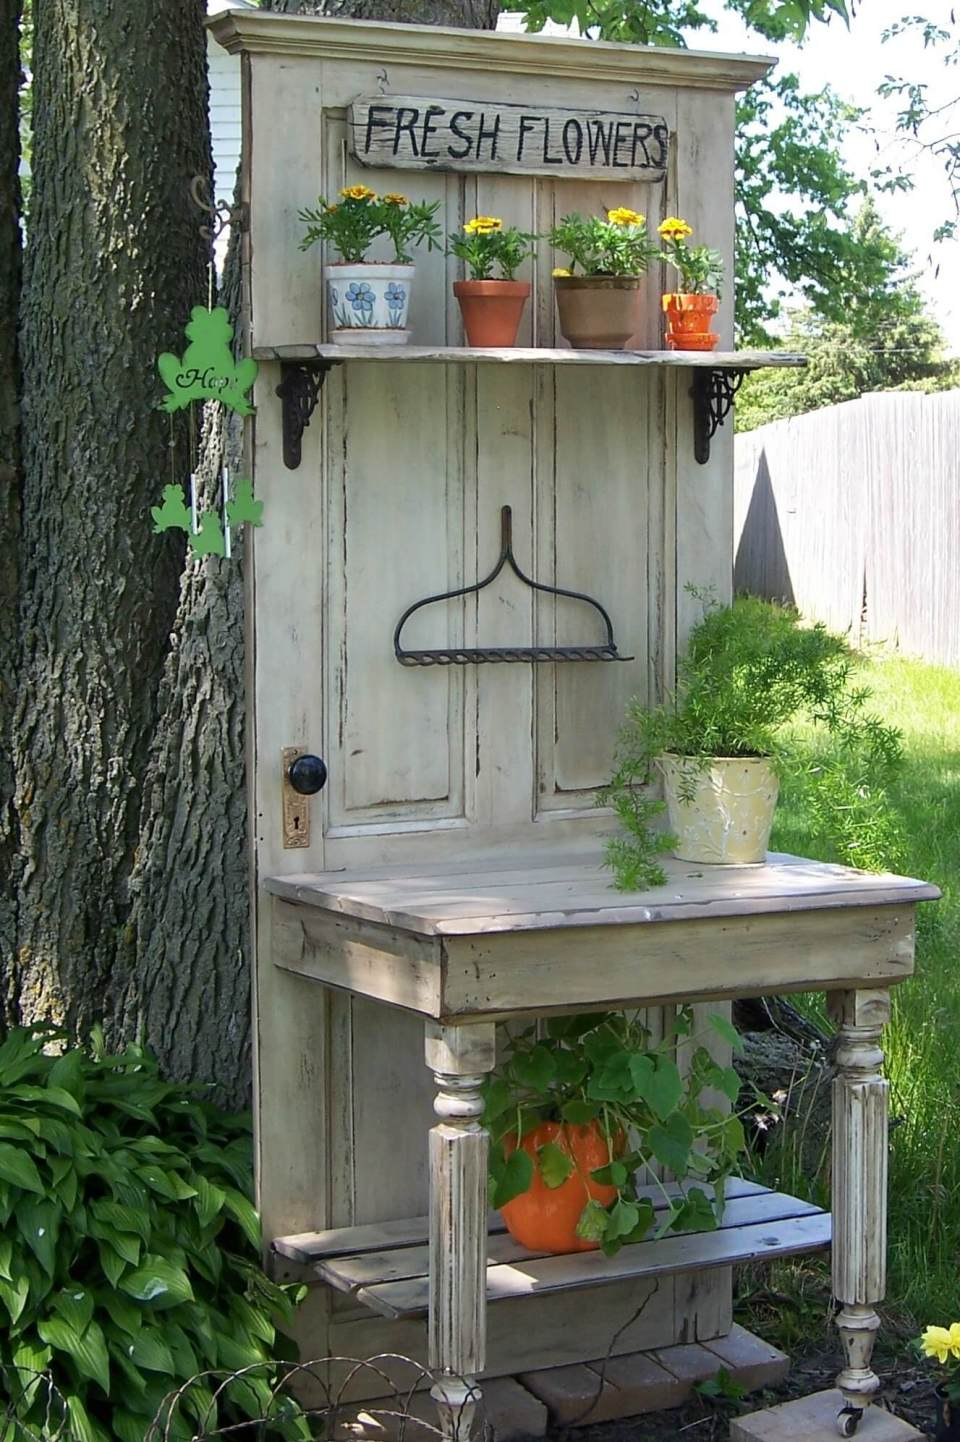 Potting Bench | Creative Repurposed Old Door Ideas & Projects For Your Backyard